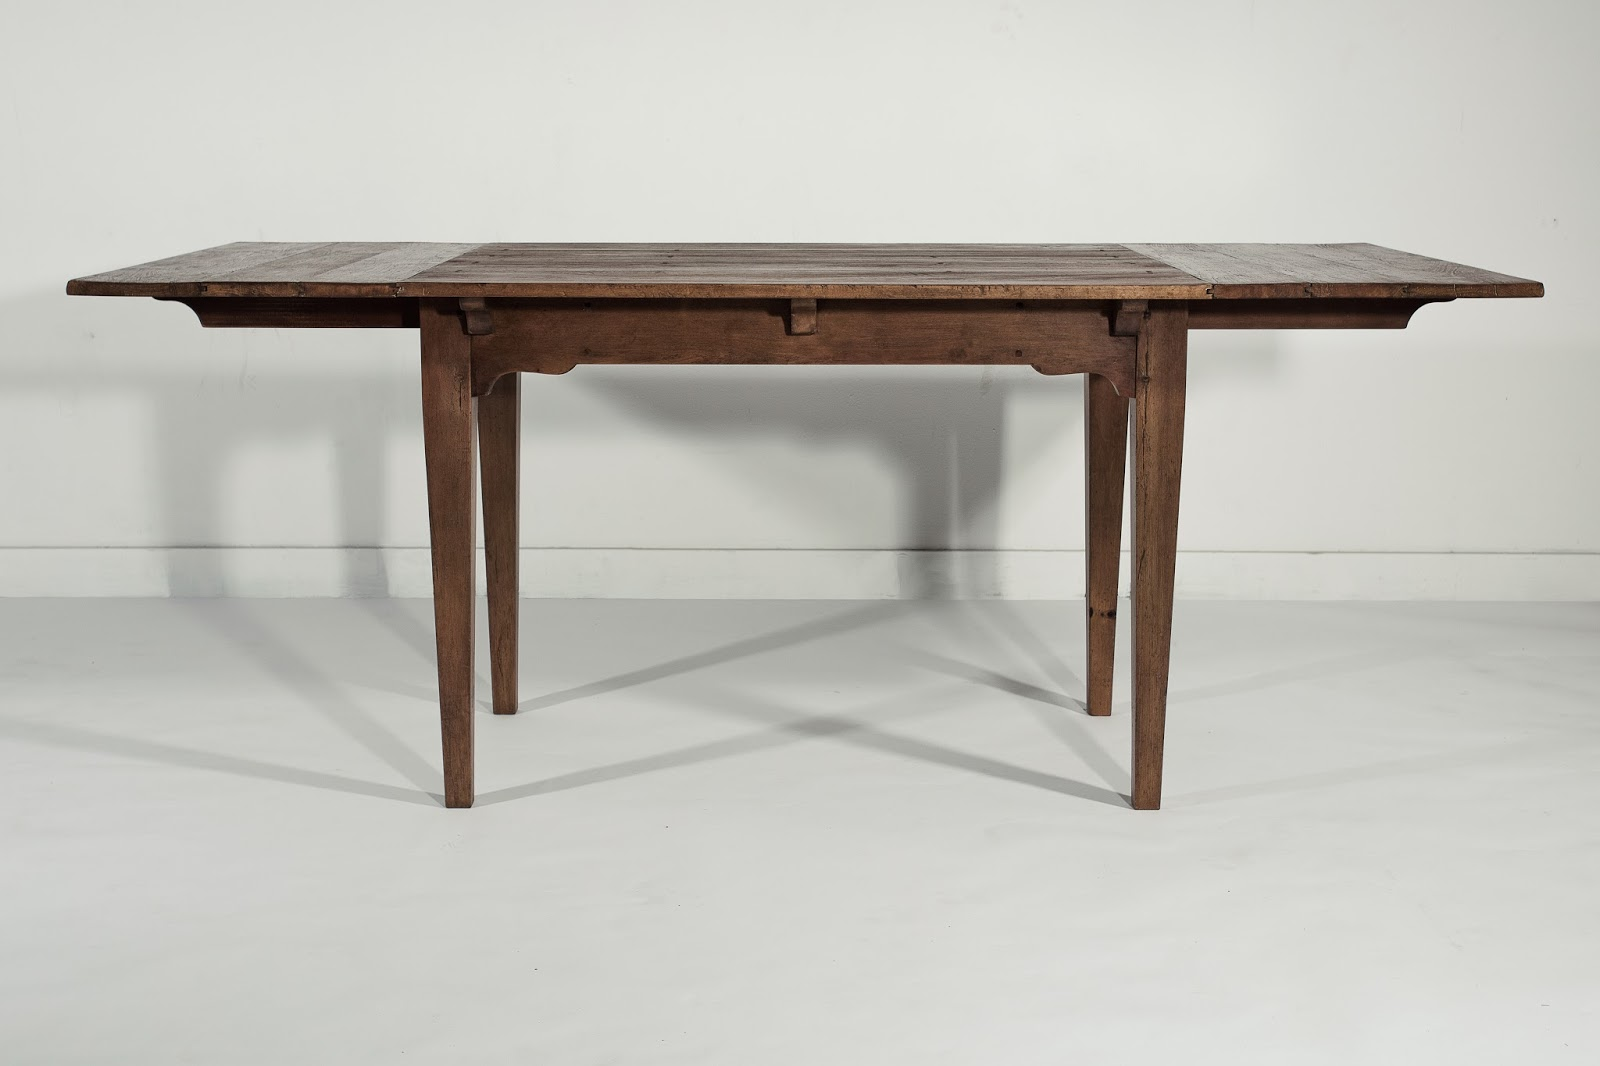 714 Farmhouse Extension Dining Table, Banquette Table, Farm Table With  Leaves